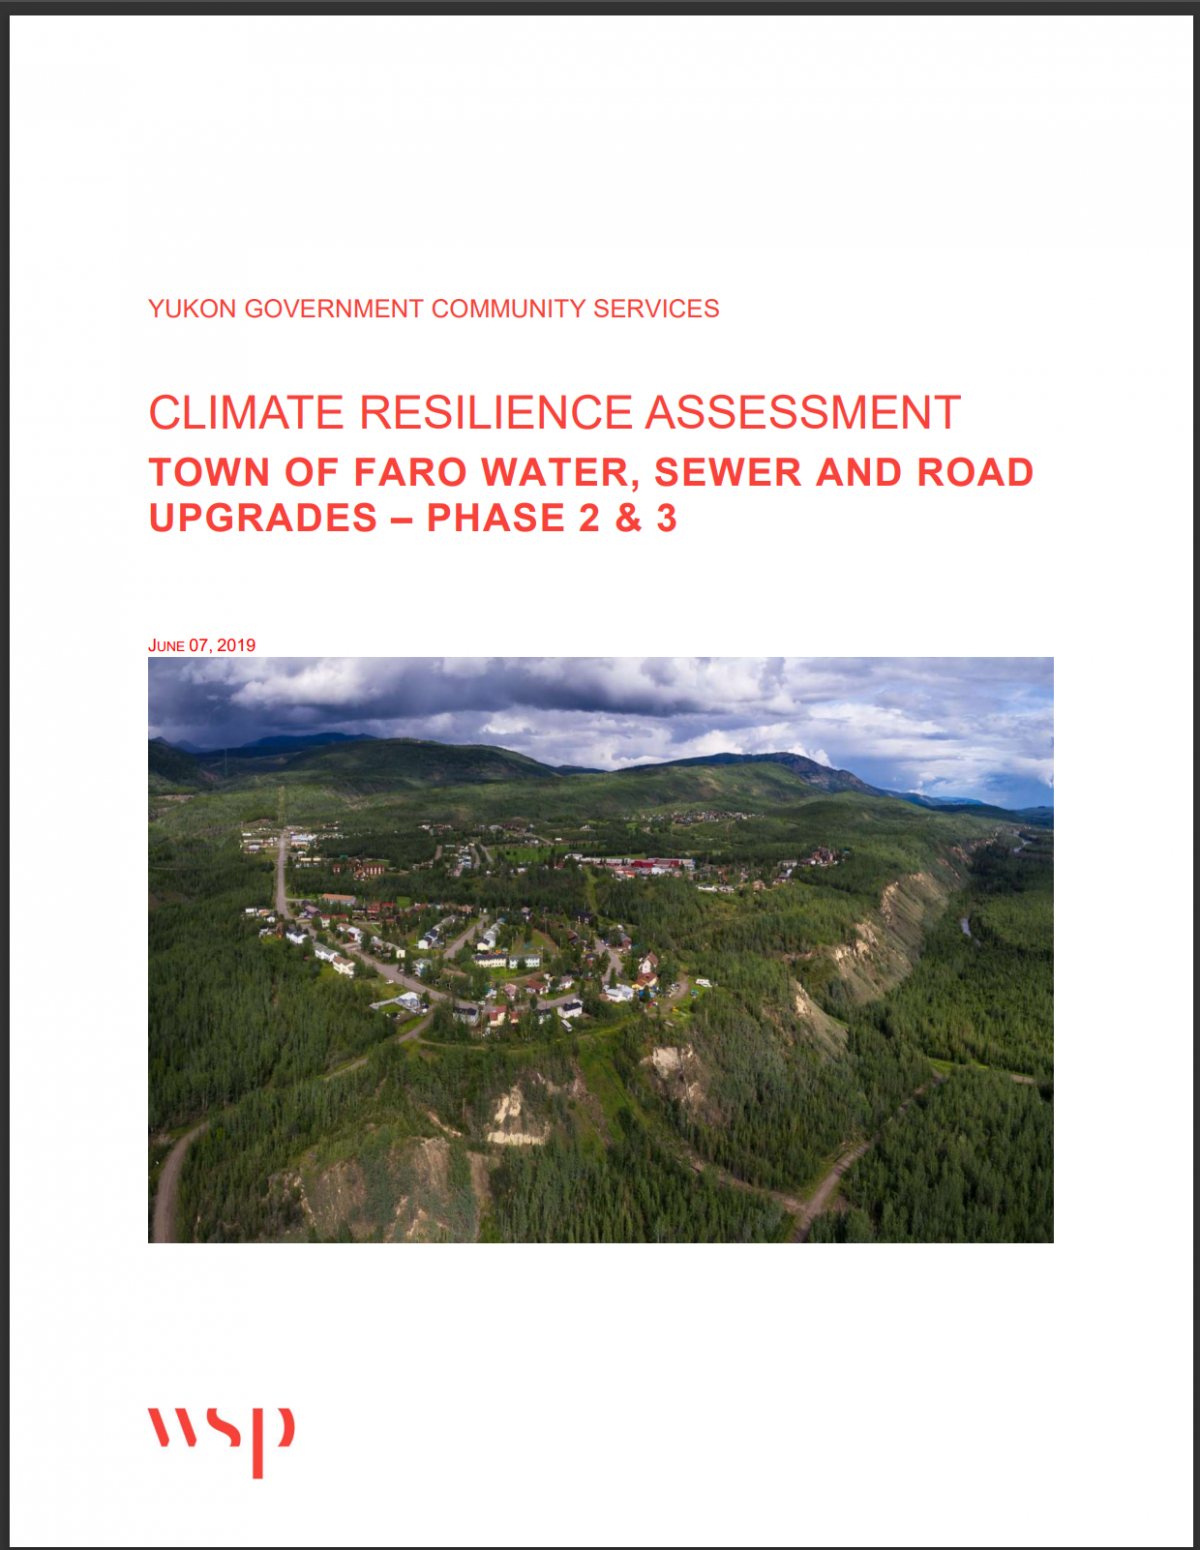 Cover Image Climate Resiliance Town Faro